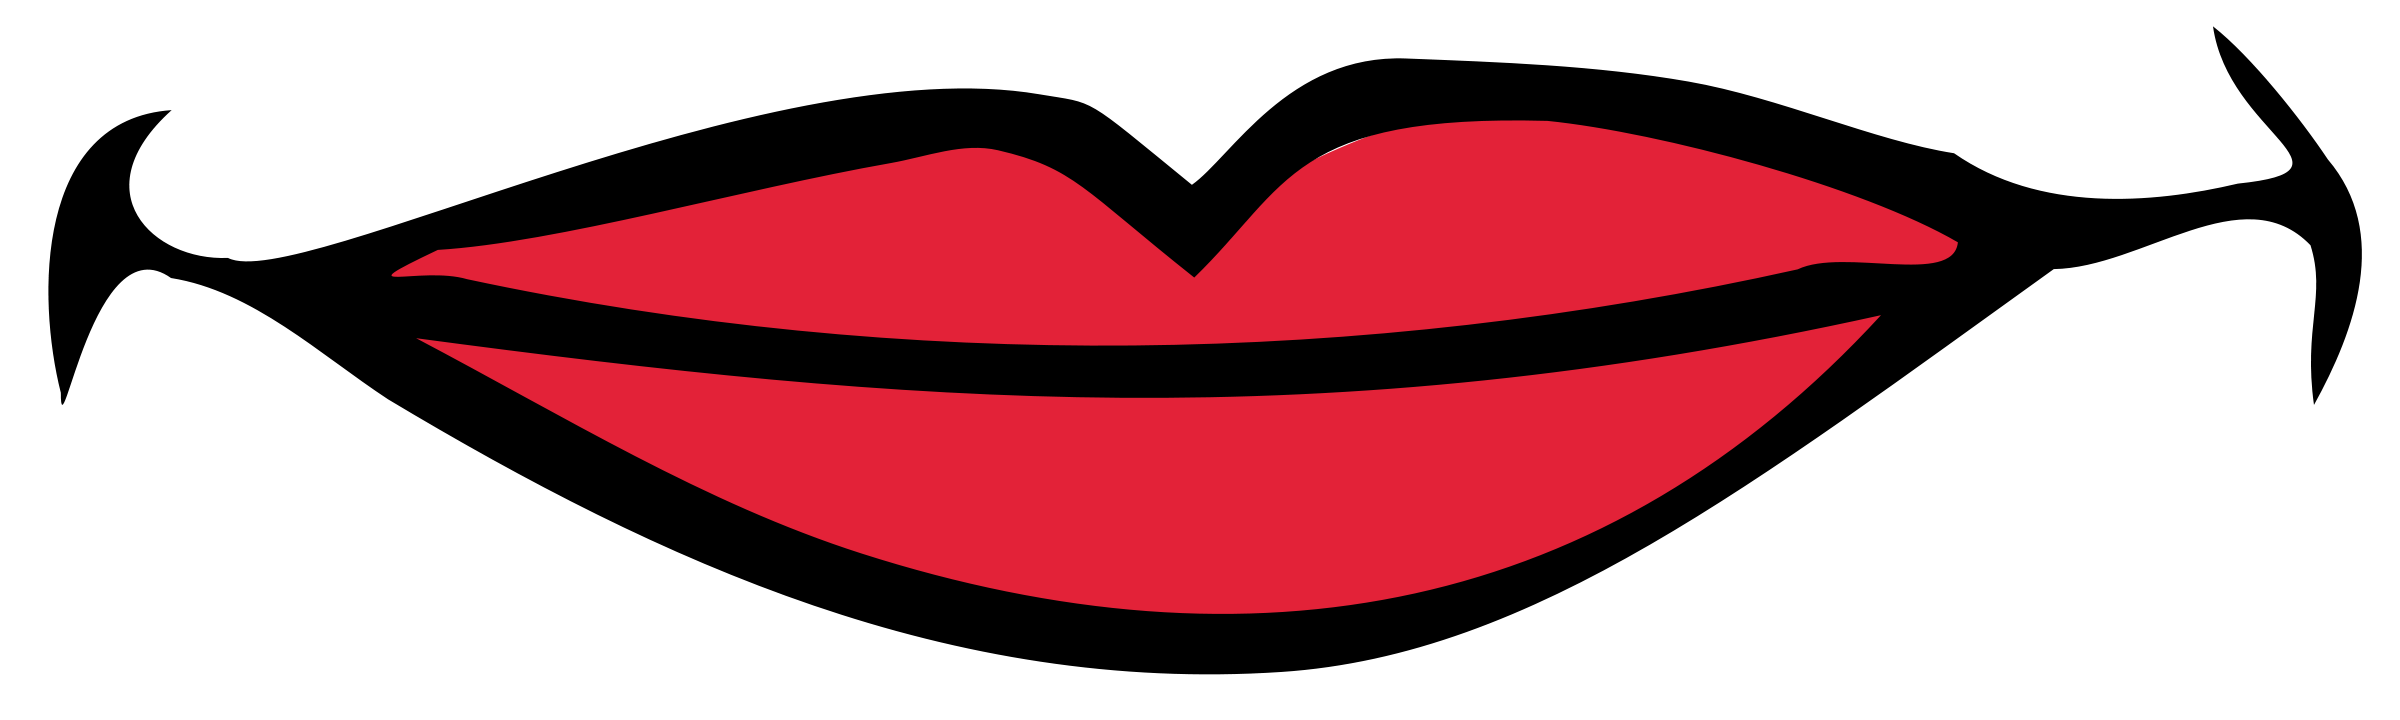 Smile Lips PNG - 45668